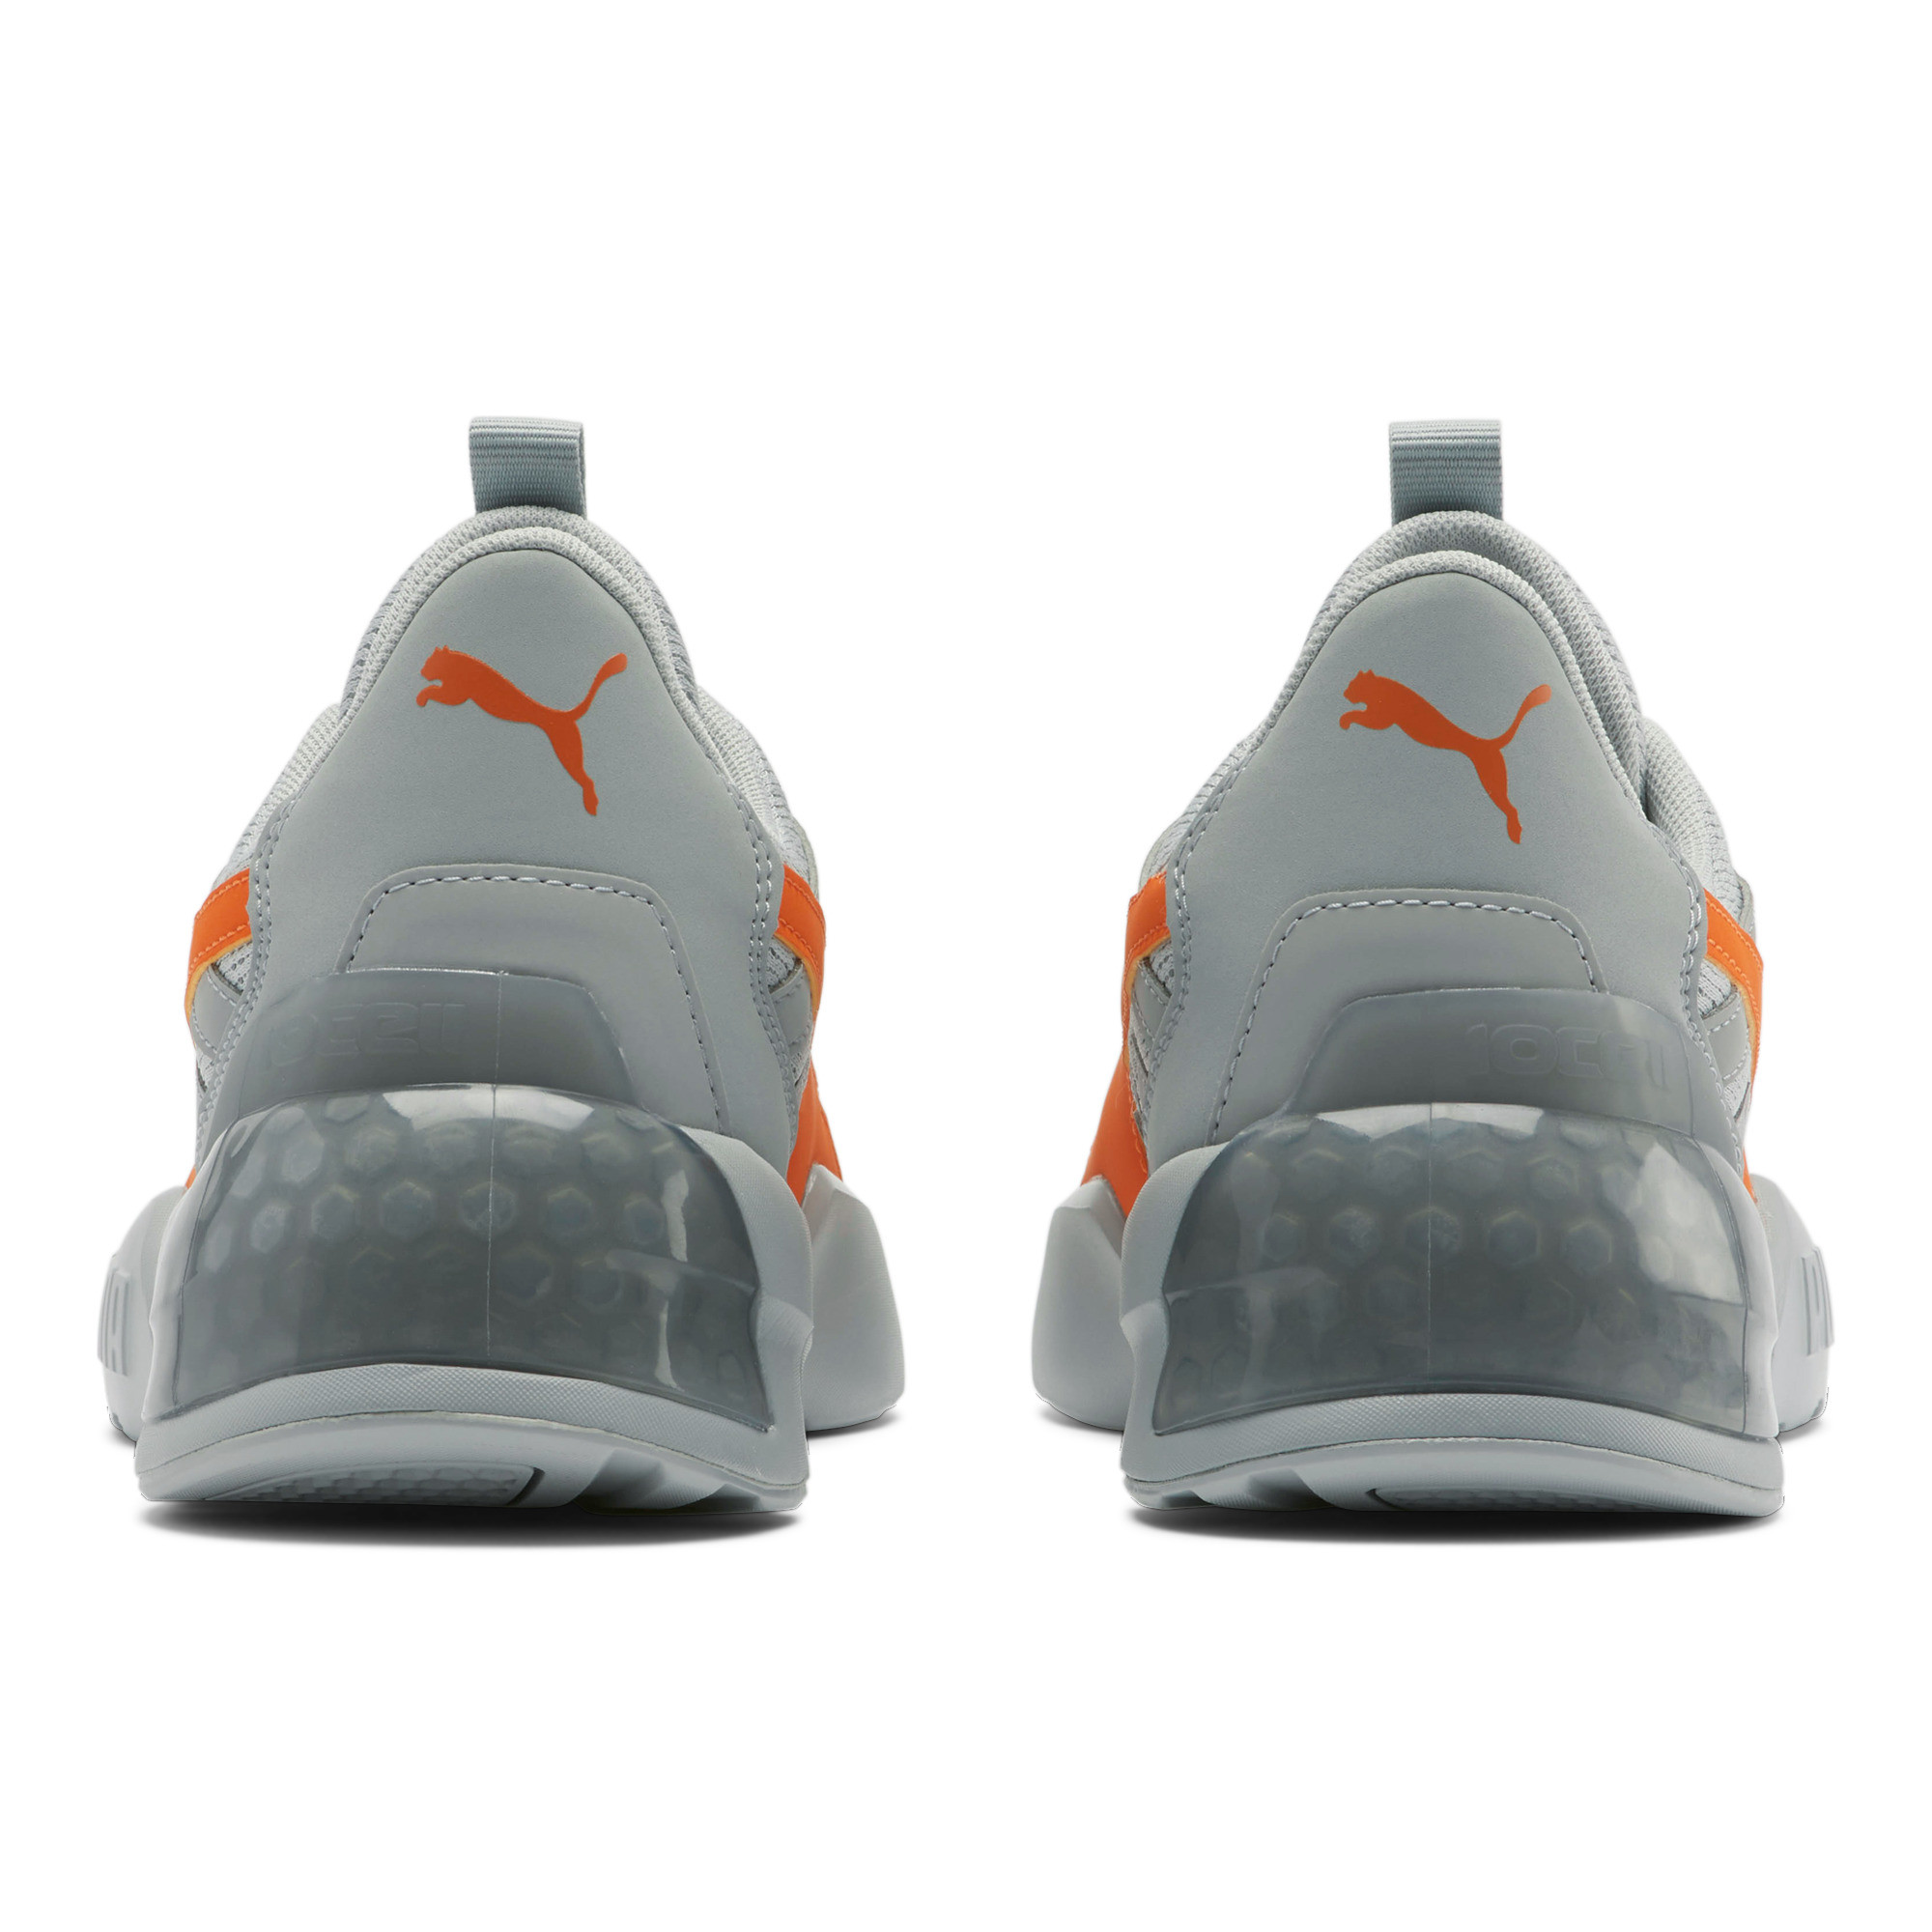 PUMA-Men-039-s-CELL-Pharos-Training-Shoes thumbnail 15